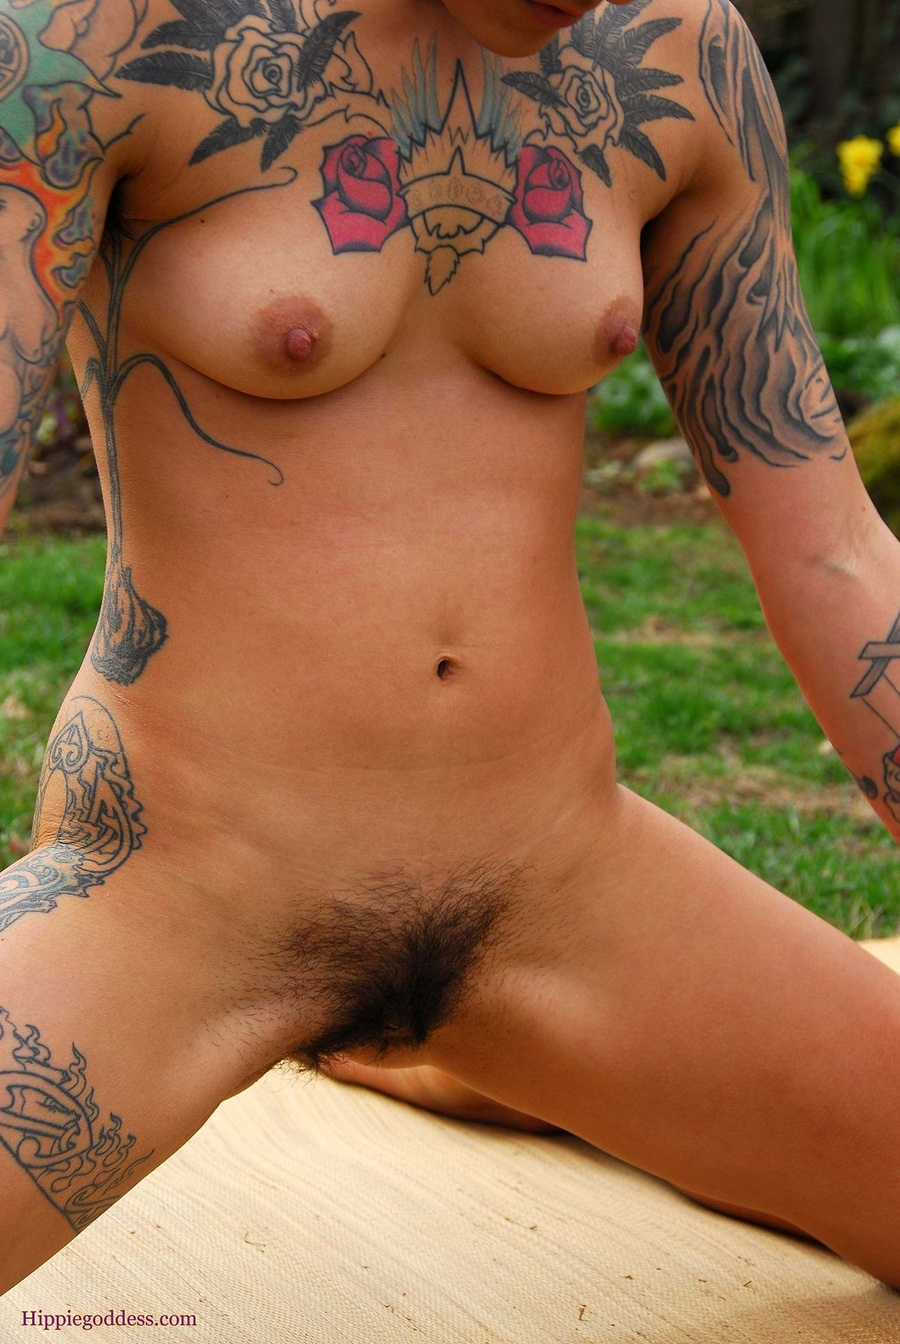 cute young girls stripped nude bound cage dessert picture 3 - XXXPicz